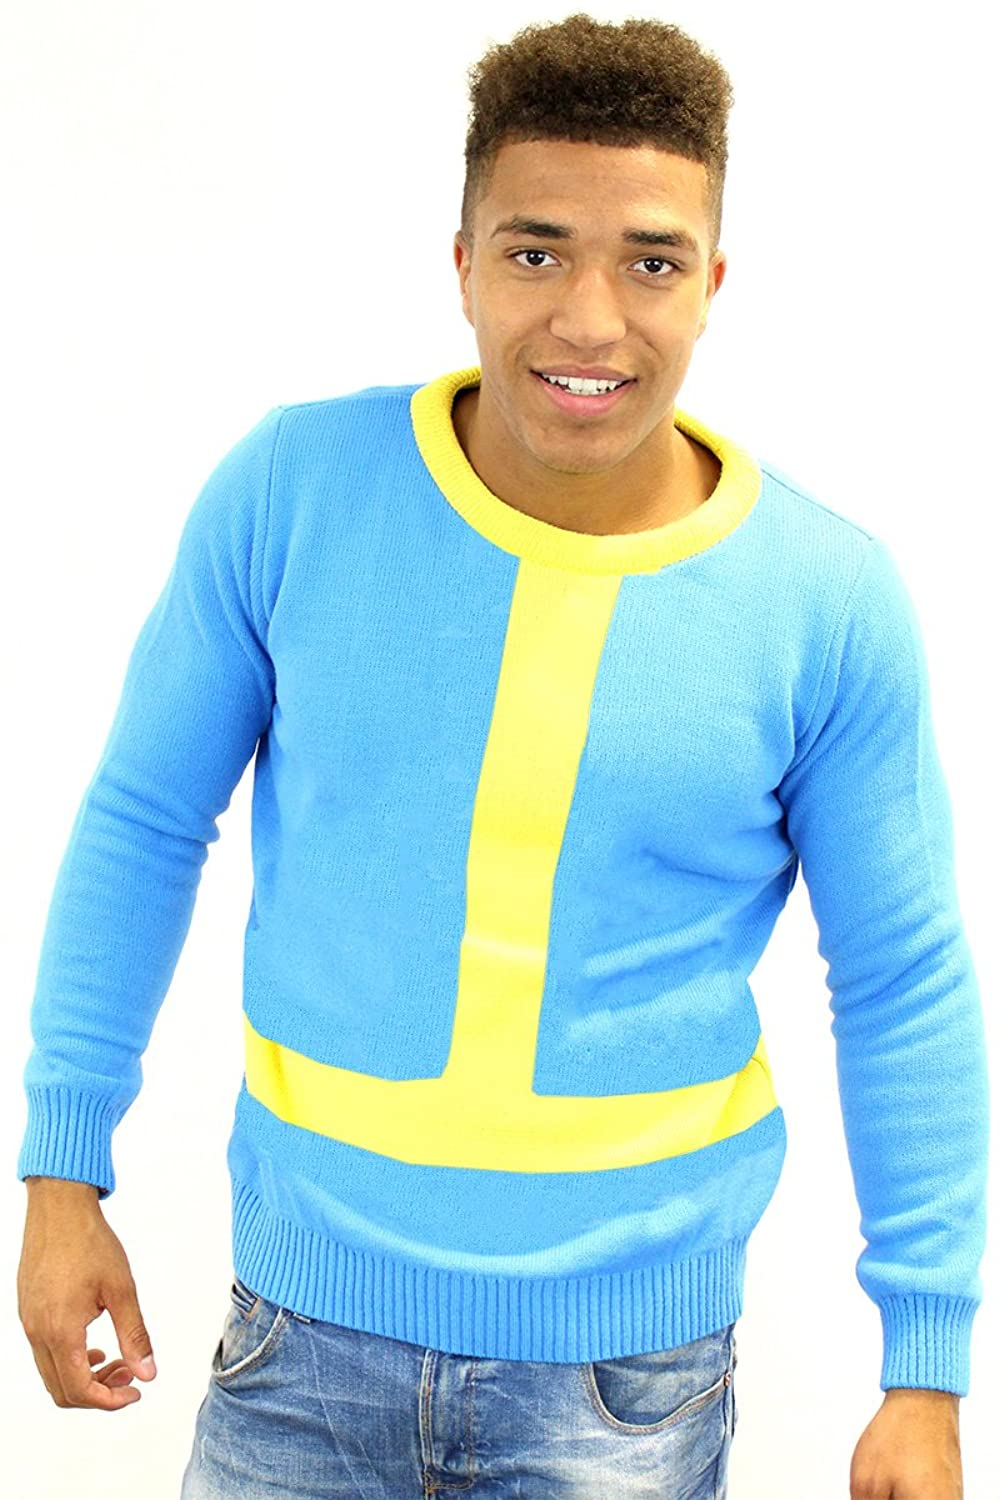 Amazon.com: Official Vault Boy Fallout Jumper / Sweater: Clothing